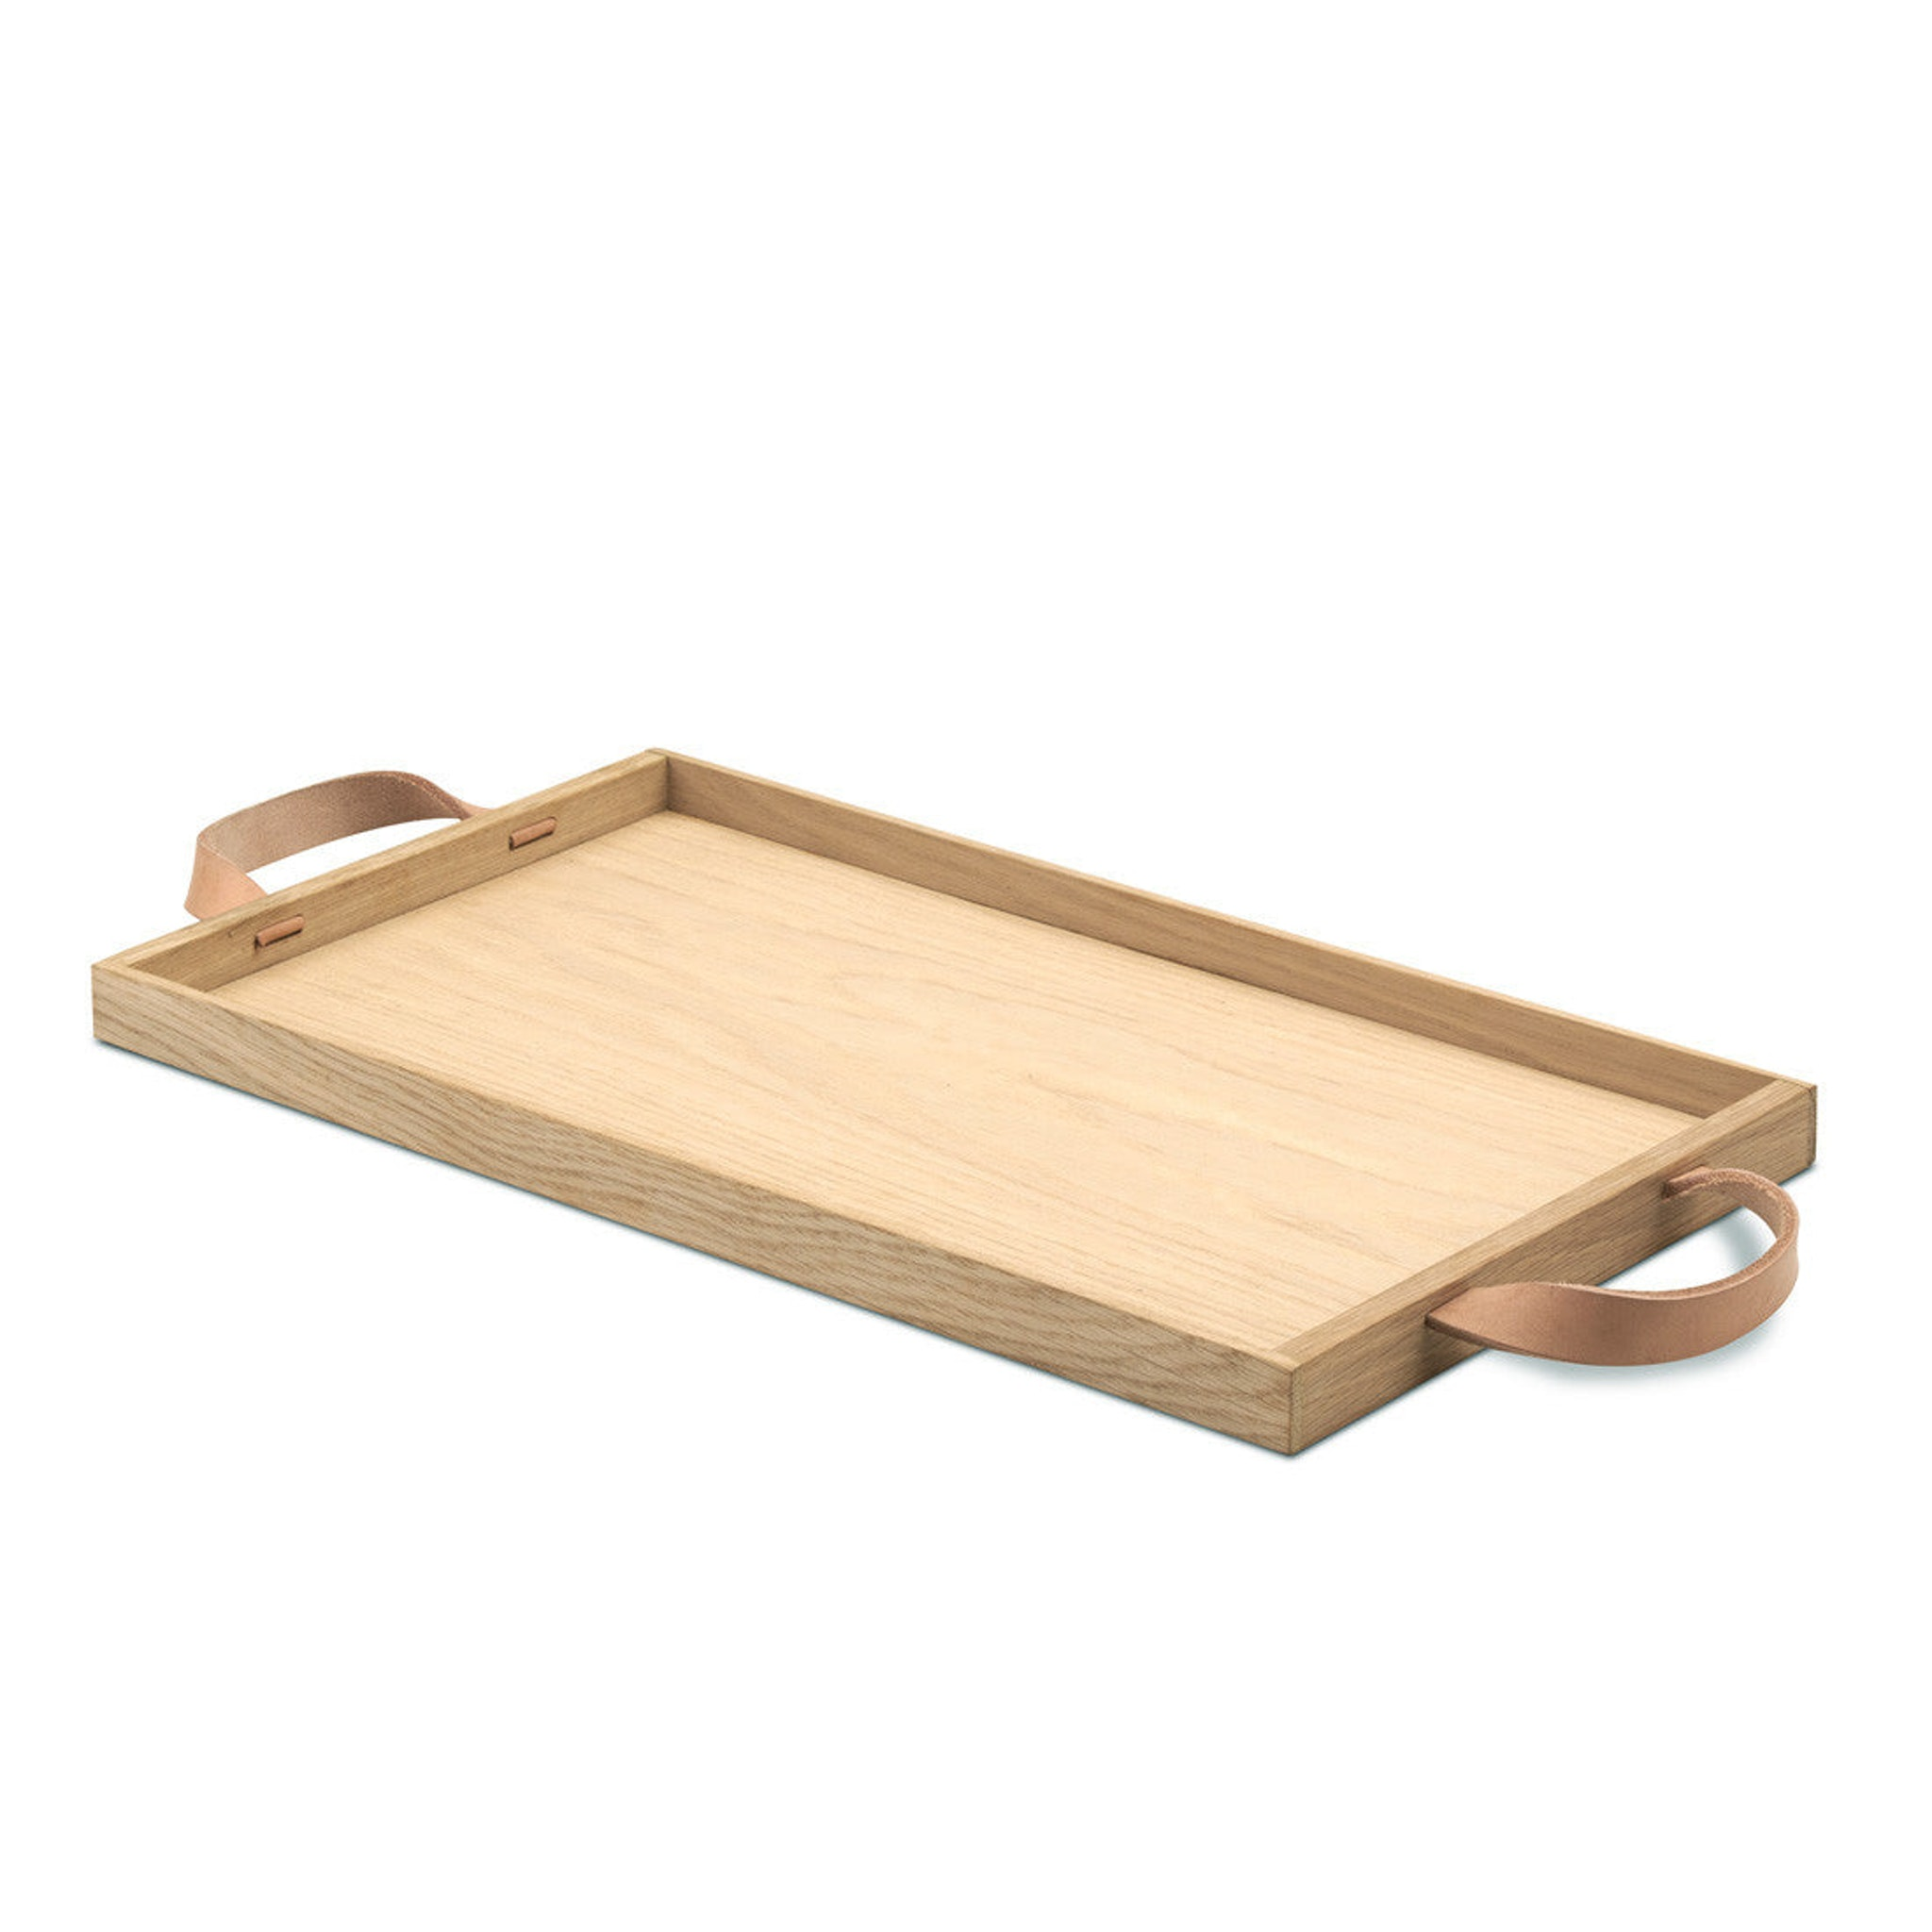 Norr Tray by Skagerak